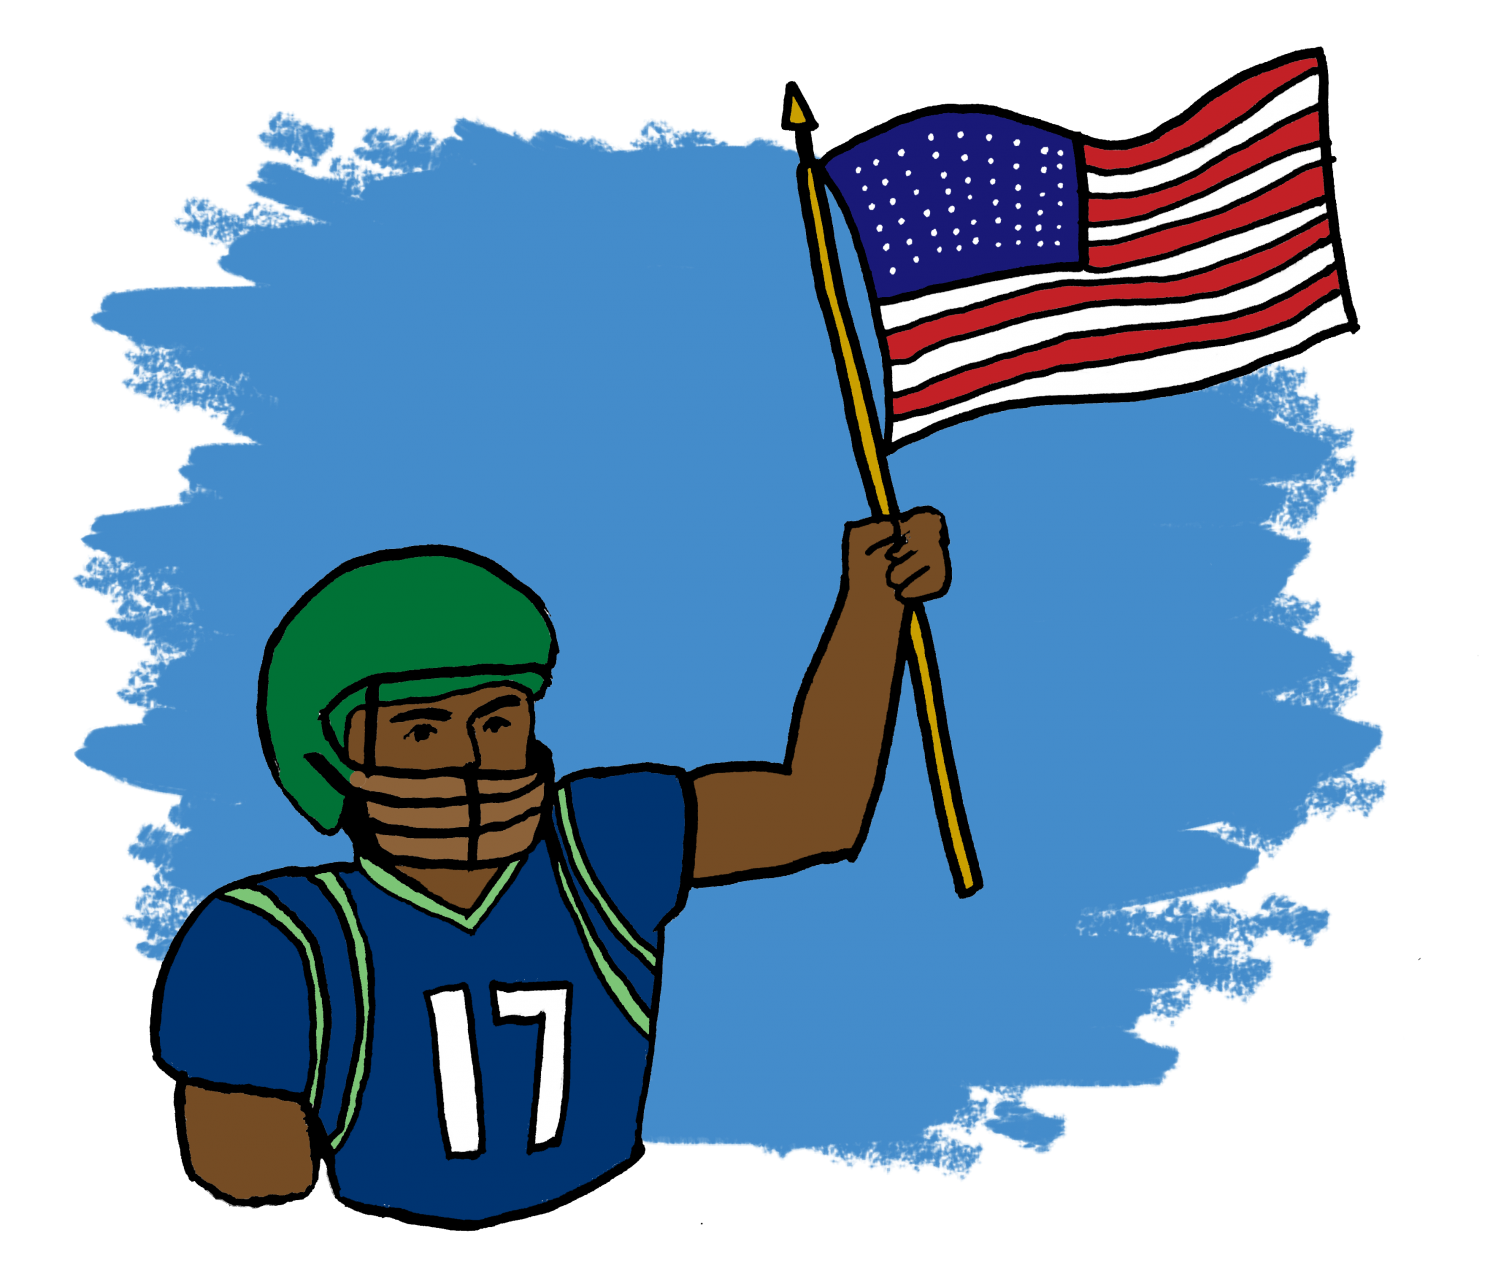 Football has a deep connection to American life.